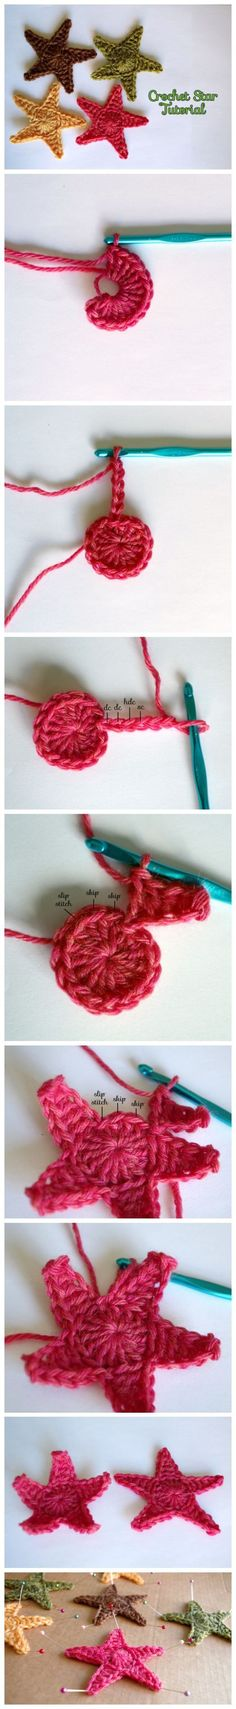 DIY a crochet star